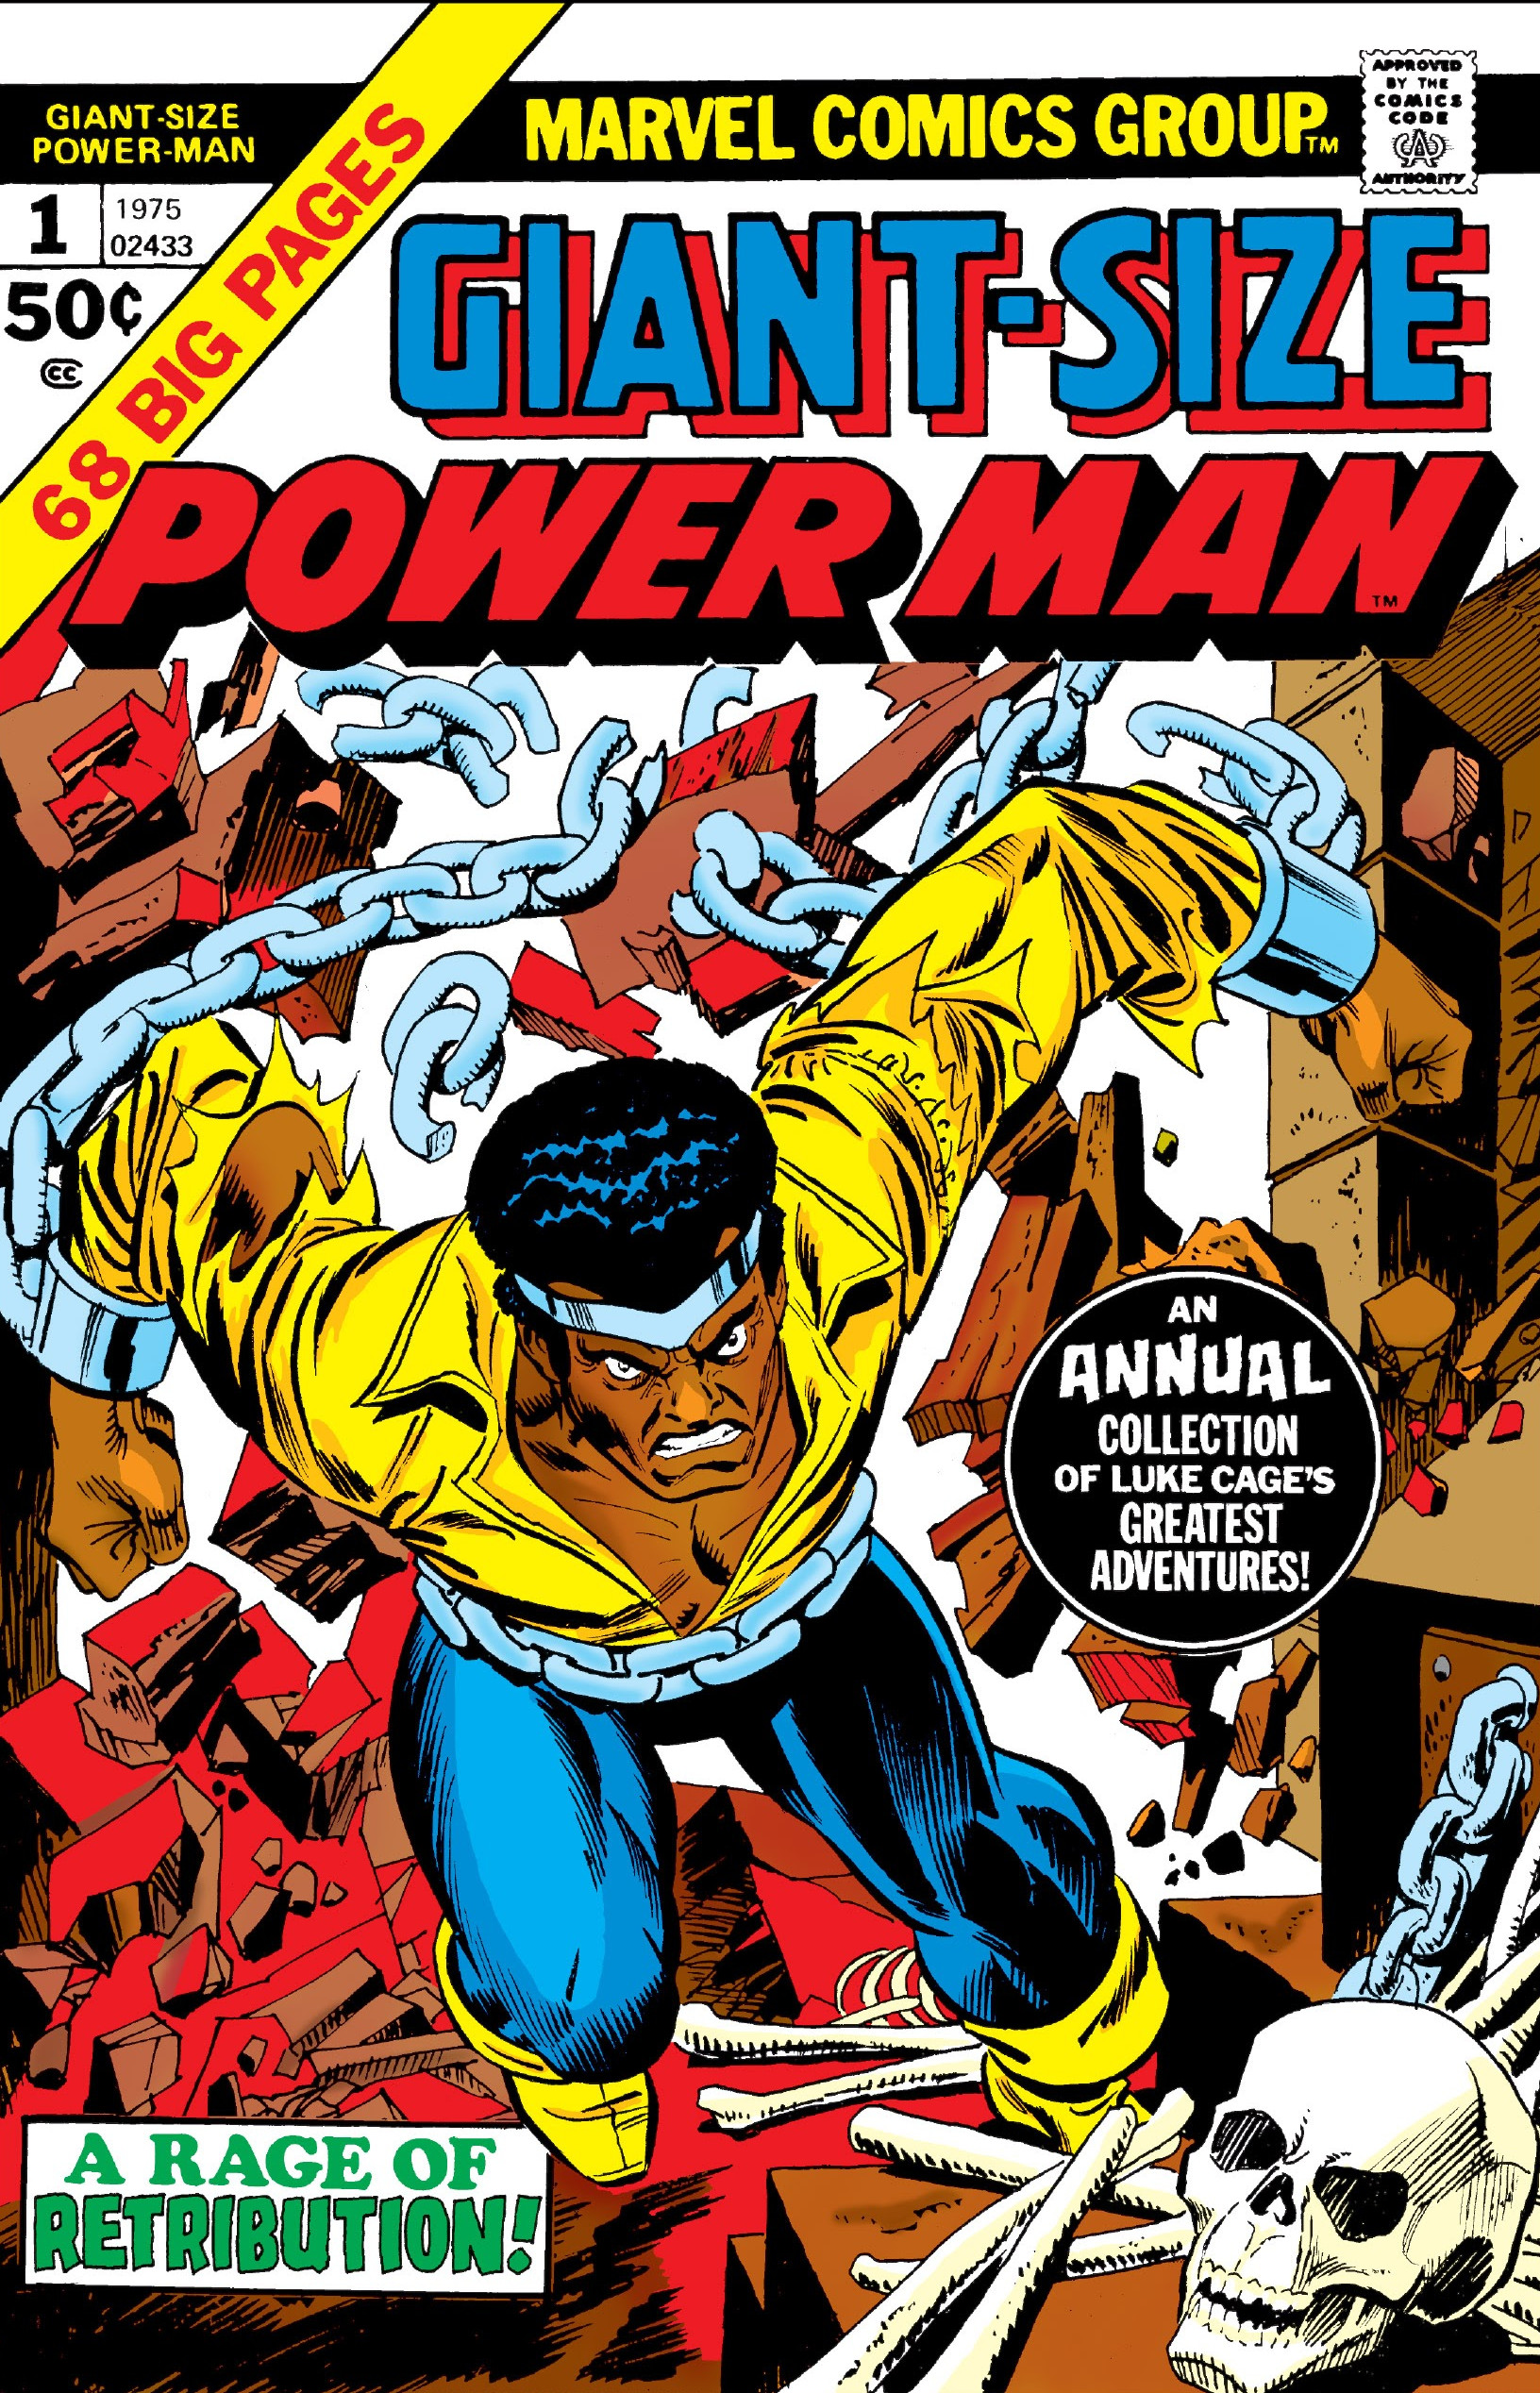 Giant-Size Power Man Vol 1 1